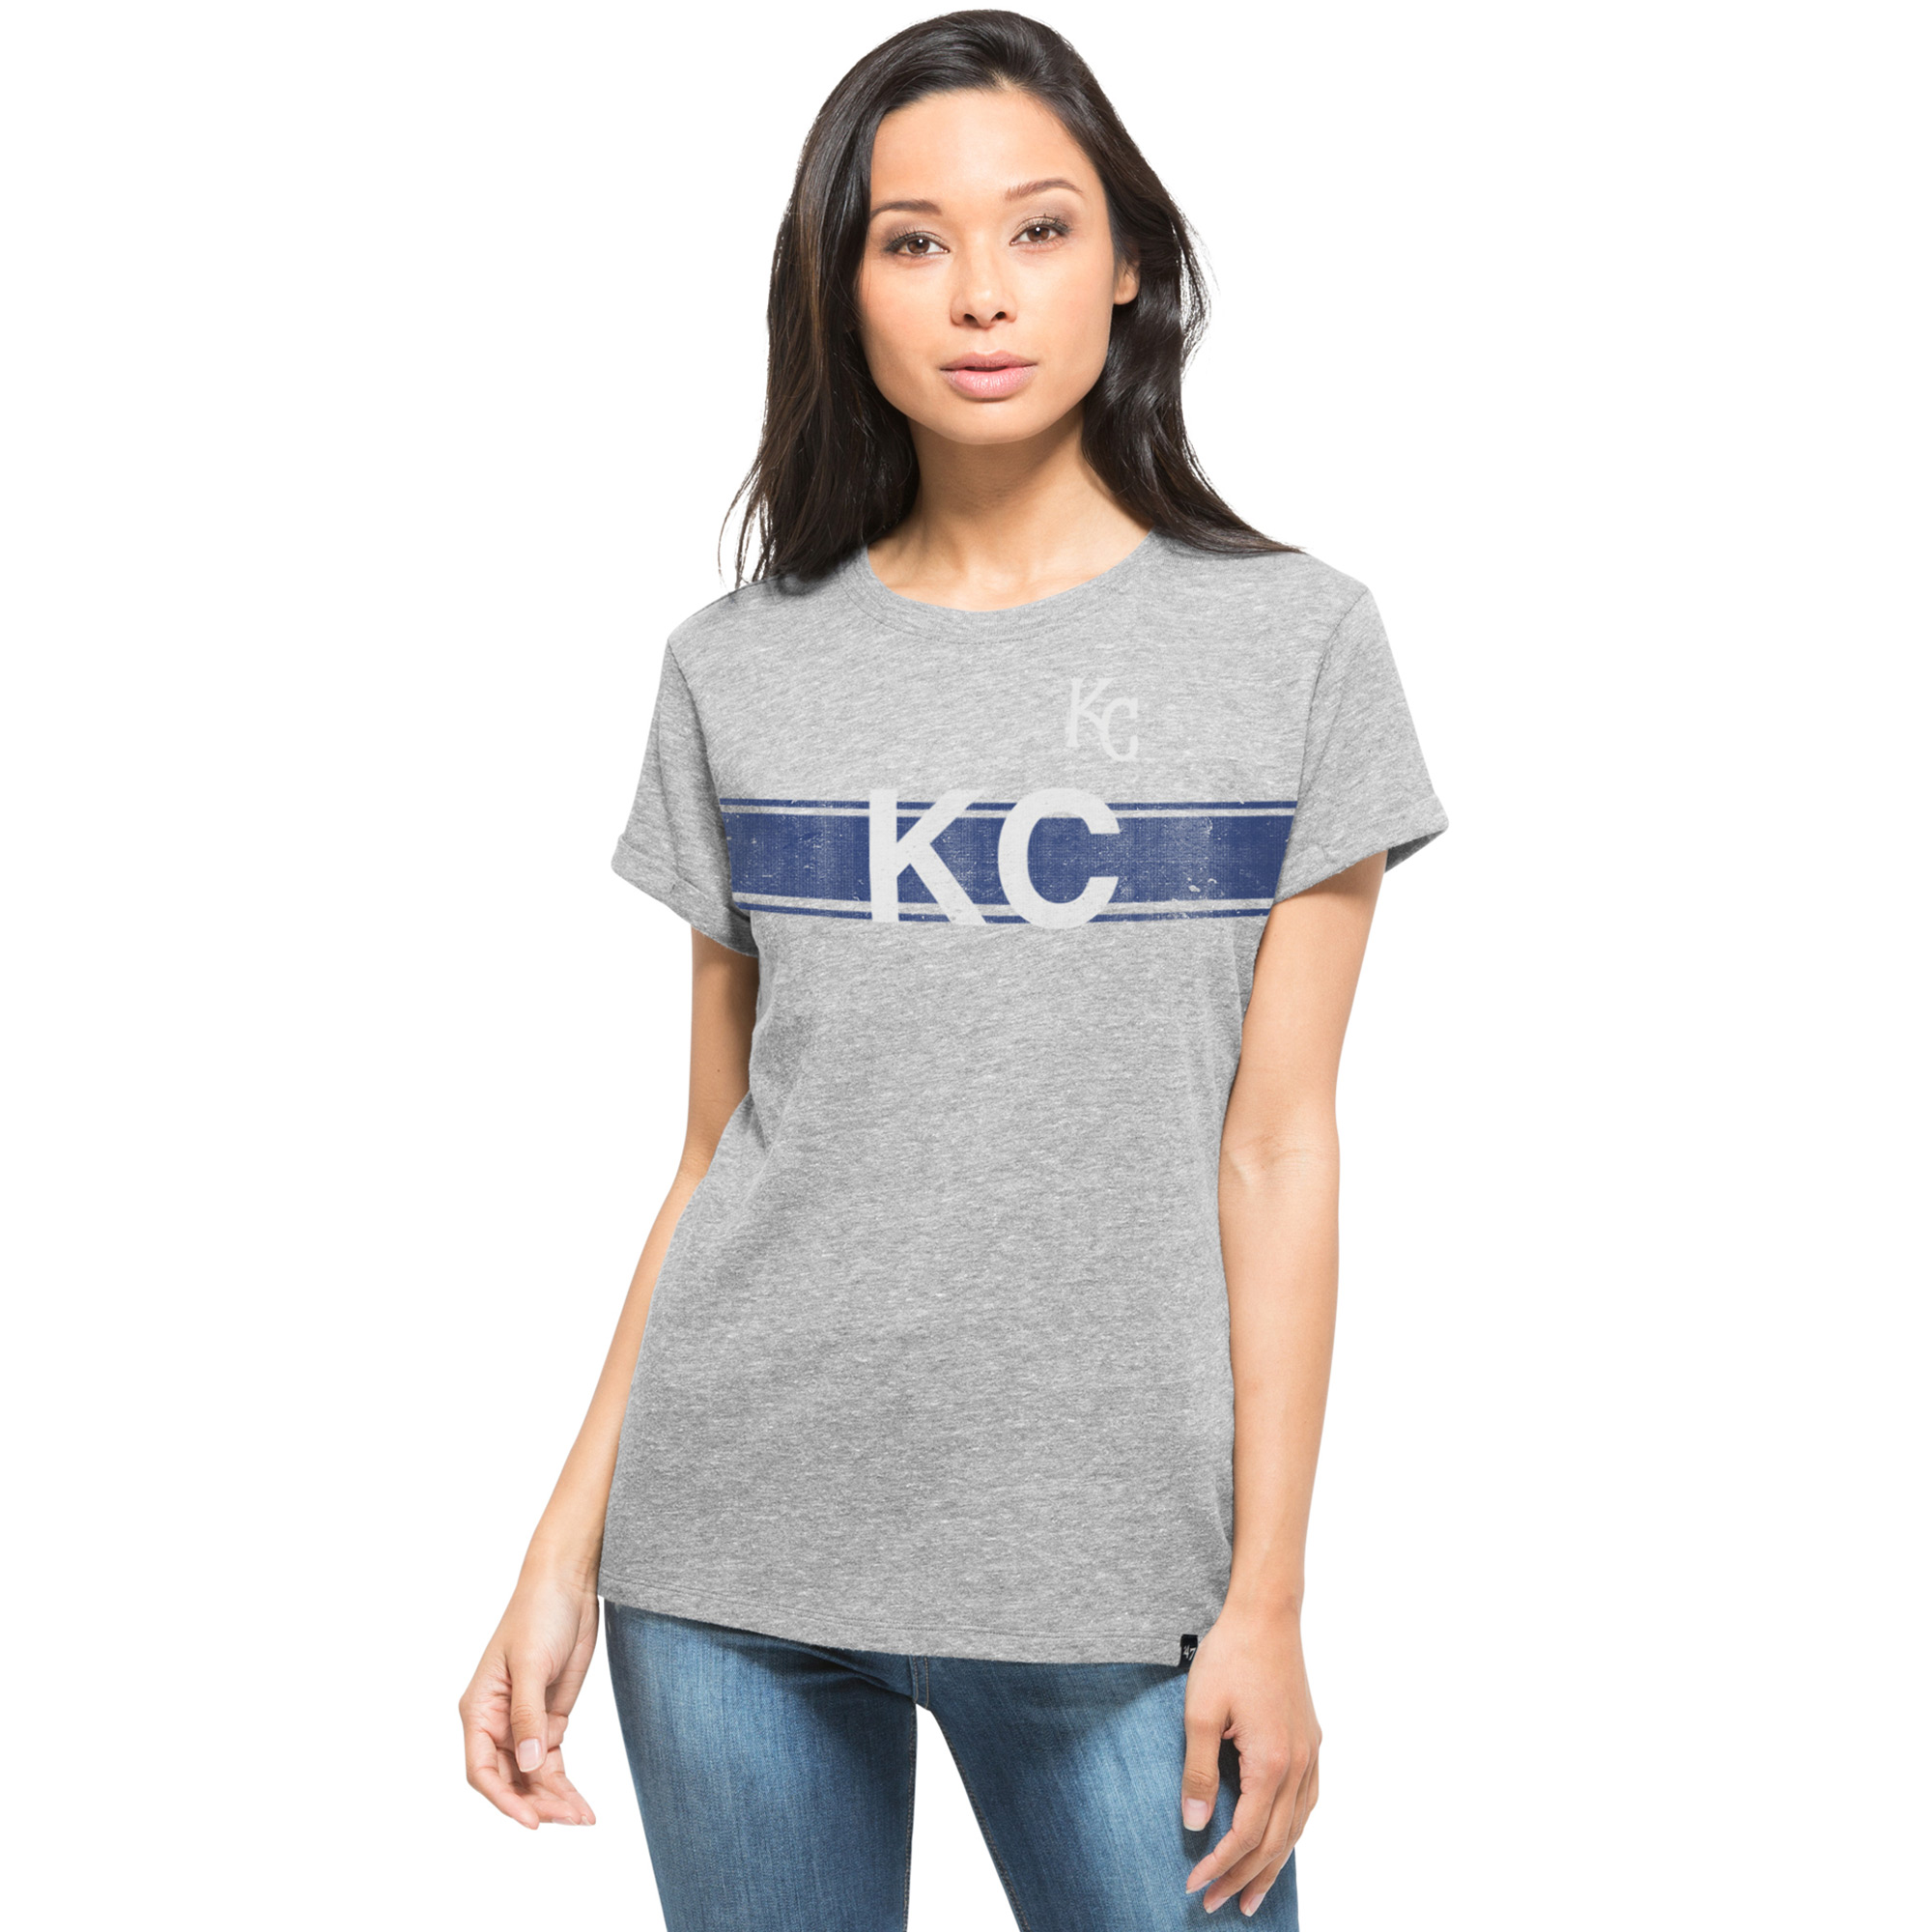 Kansas City Royals '47 Women's Super Hero Boyfriend Fit T-Shirt - Heather Gray